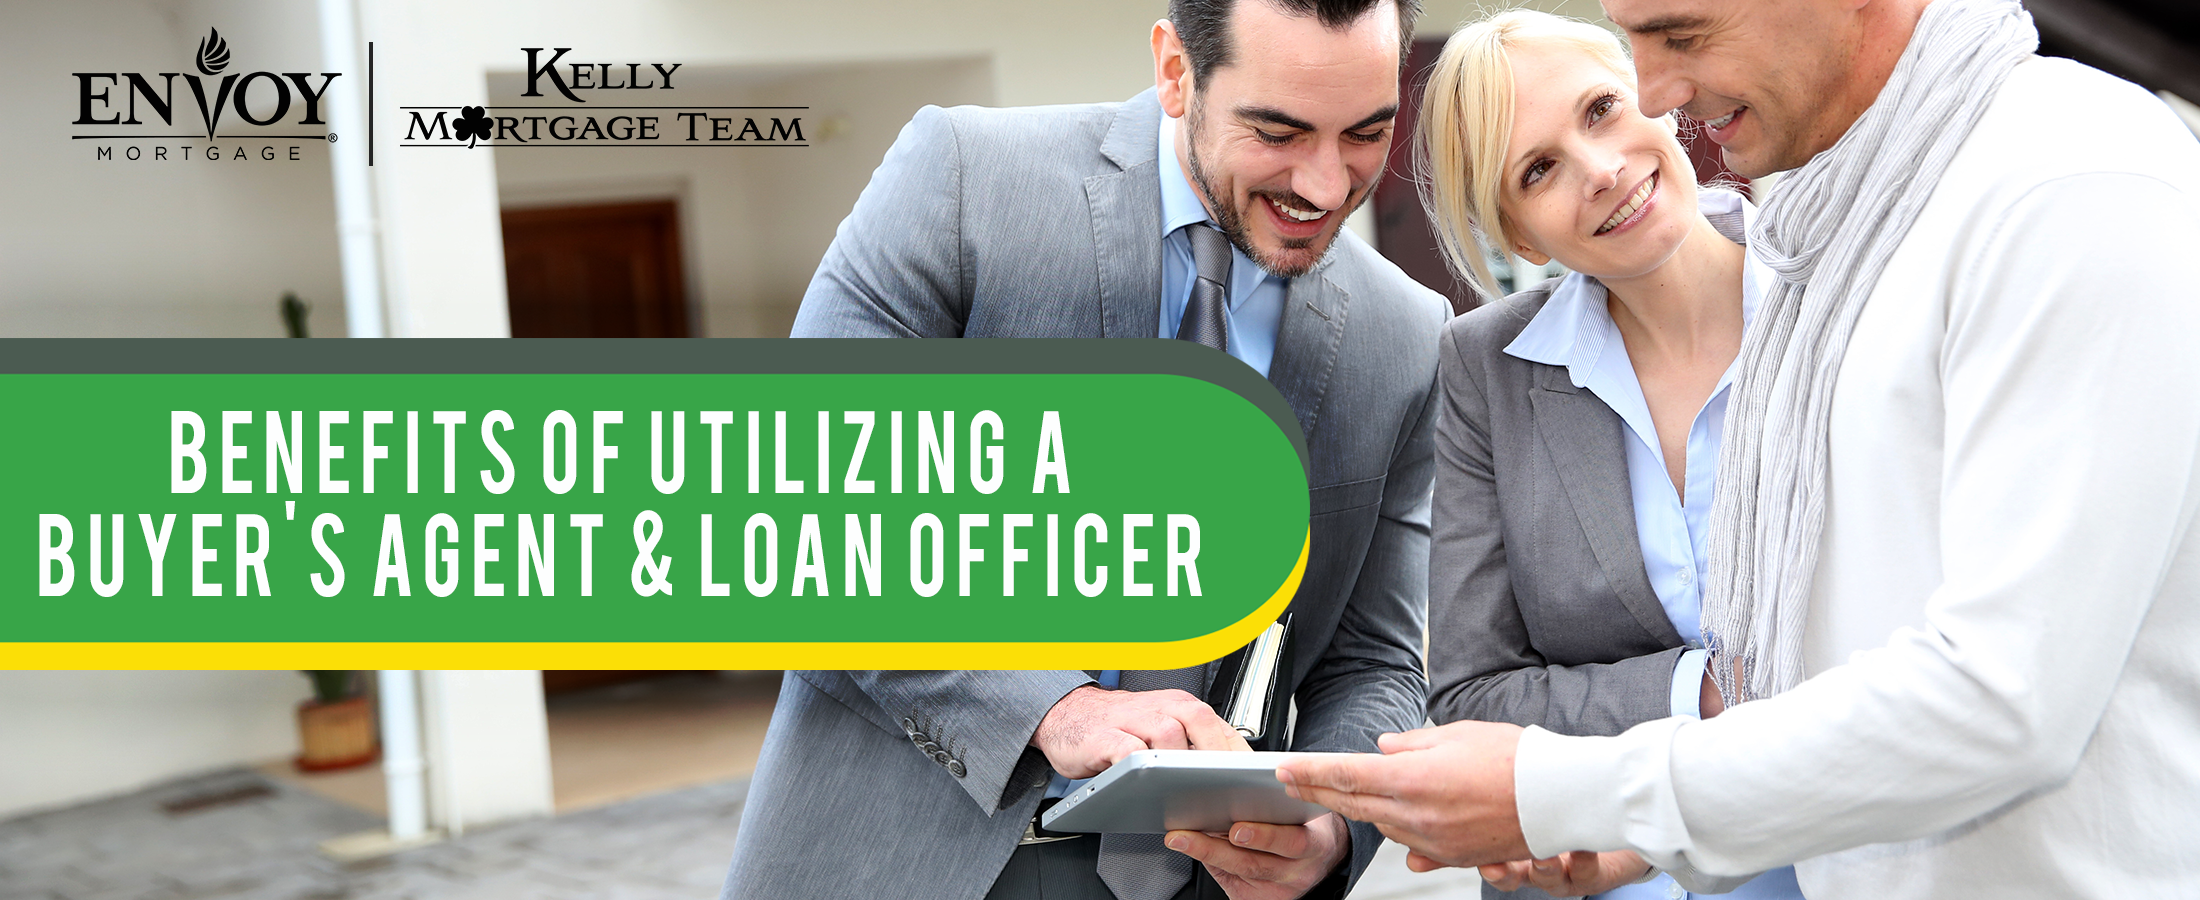 Benefits of Utilizing a Buyer's Agent and Loan Officer